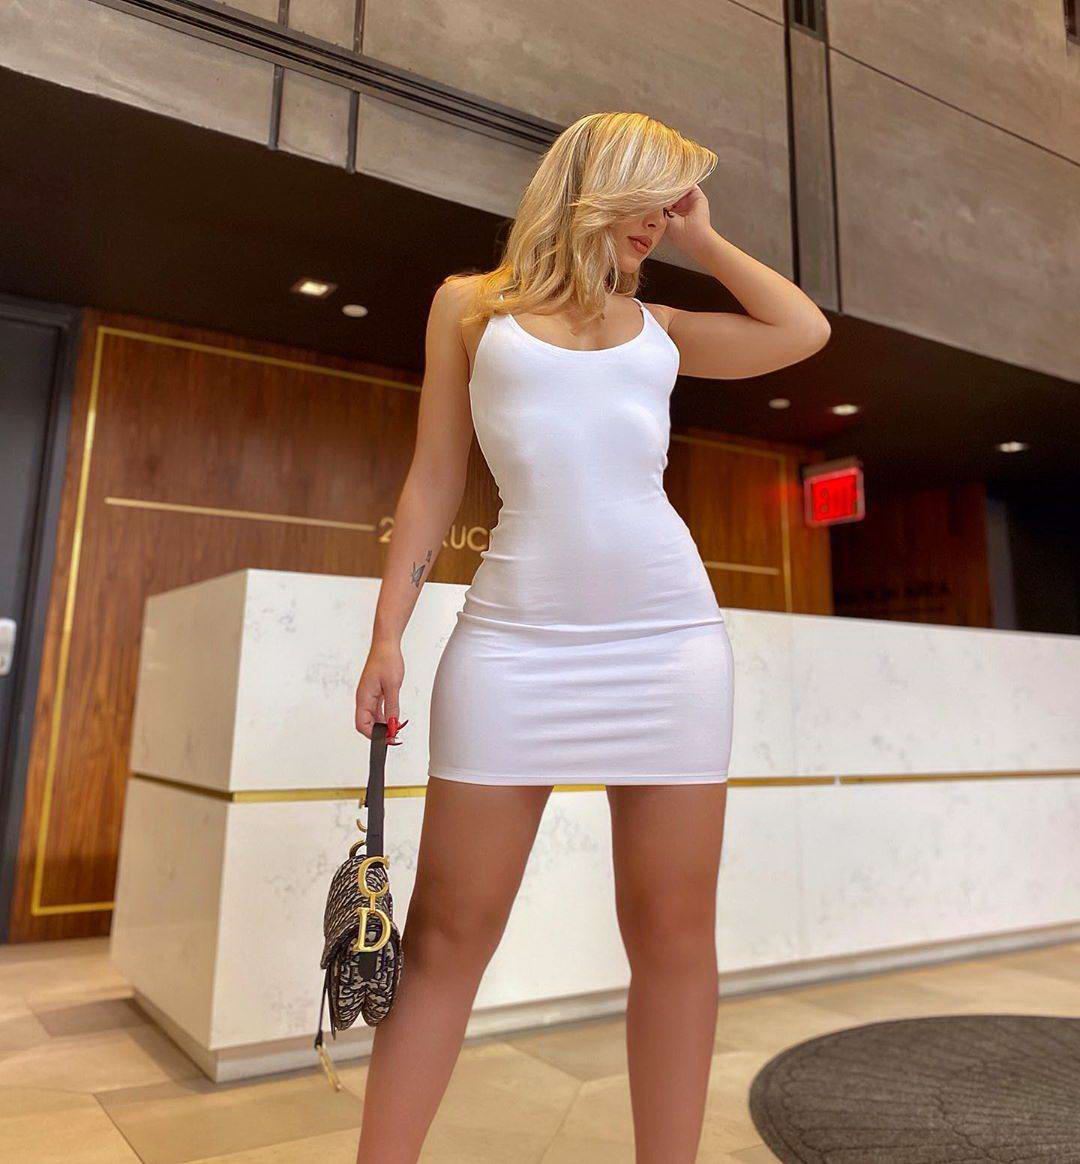 Hot Girls In Tight Dresses Are Sexy (35 Photos + 5 GIFs)